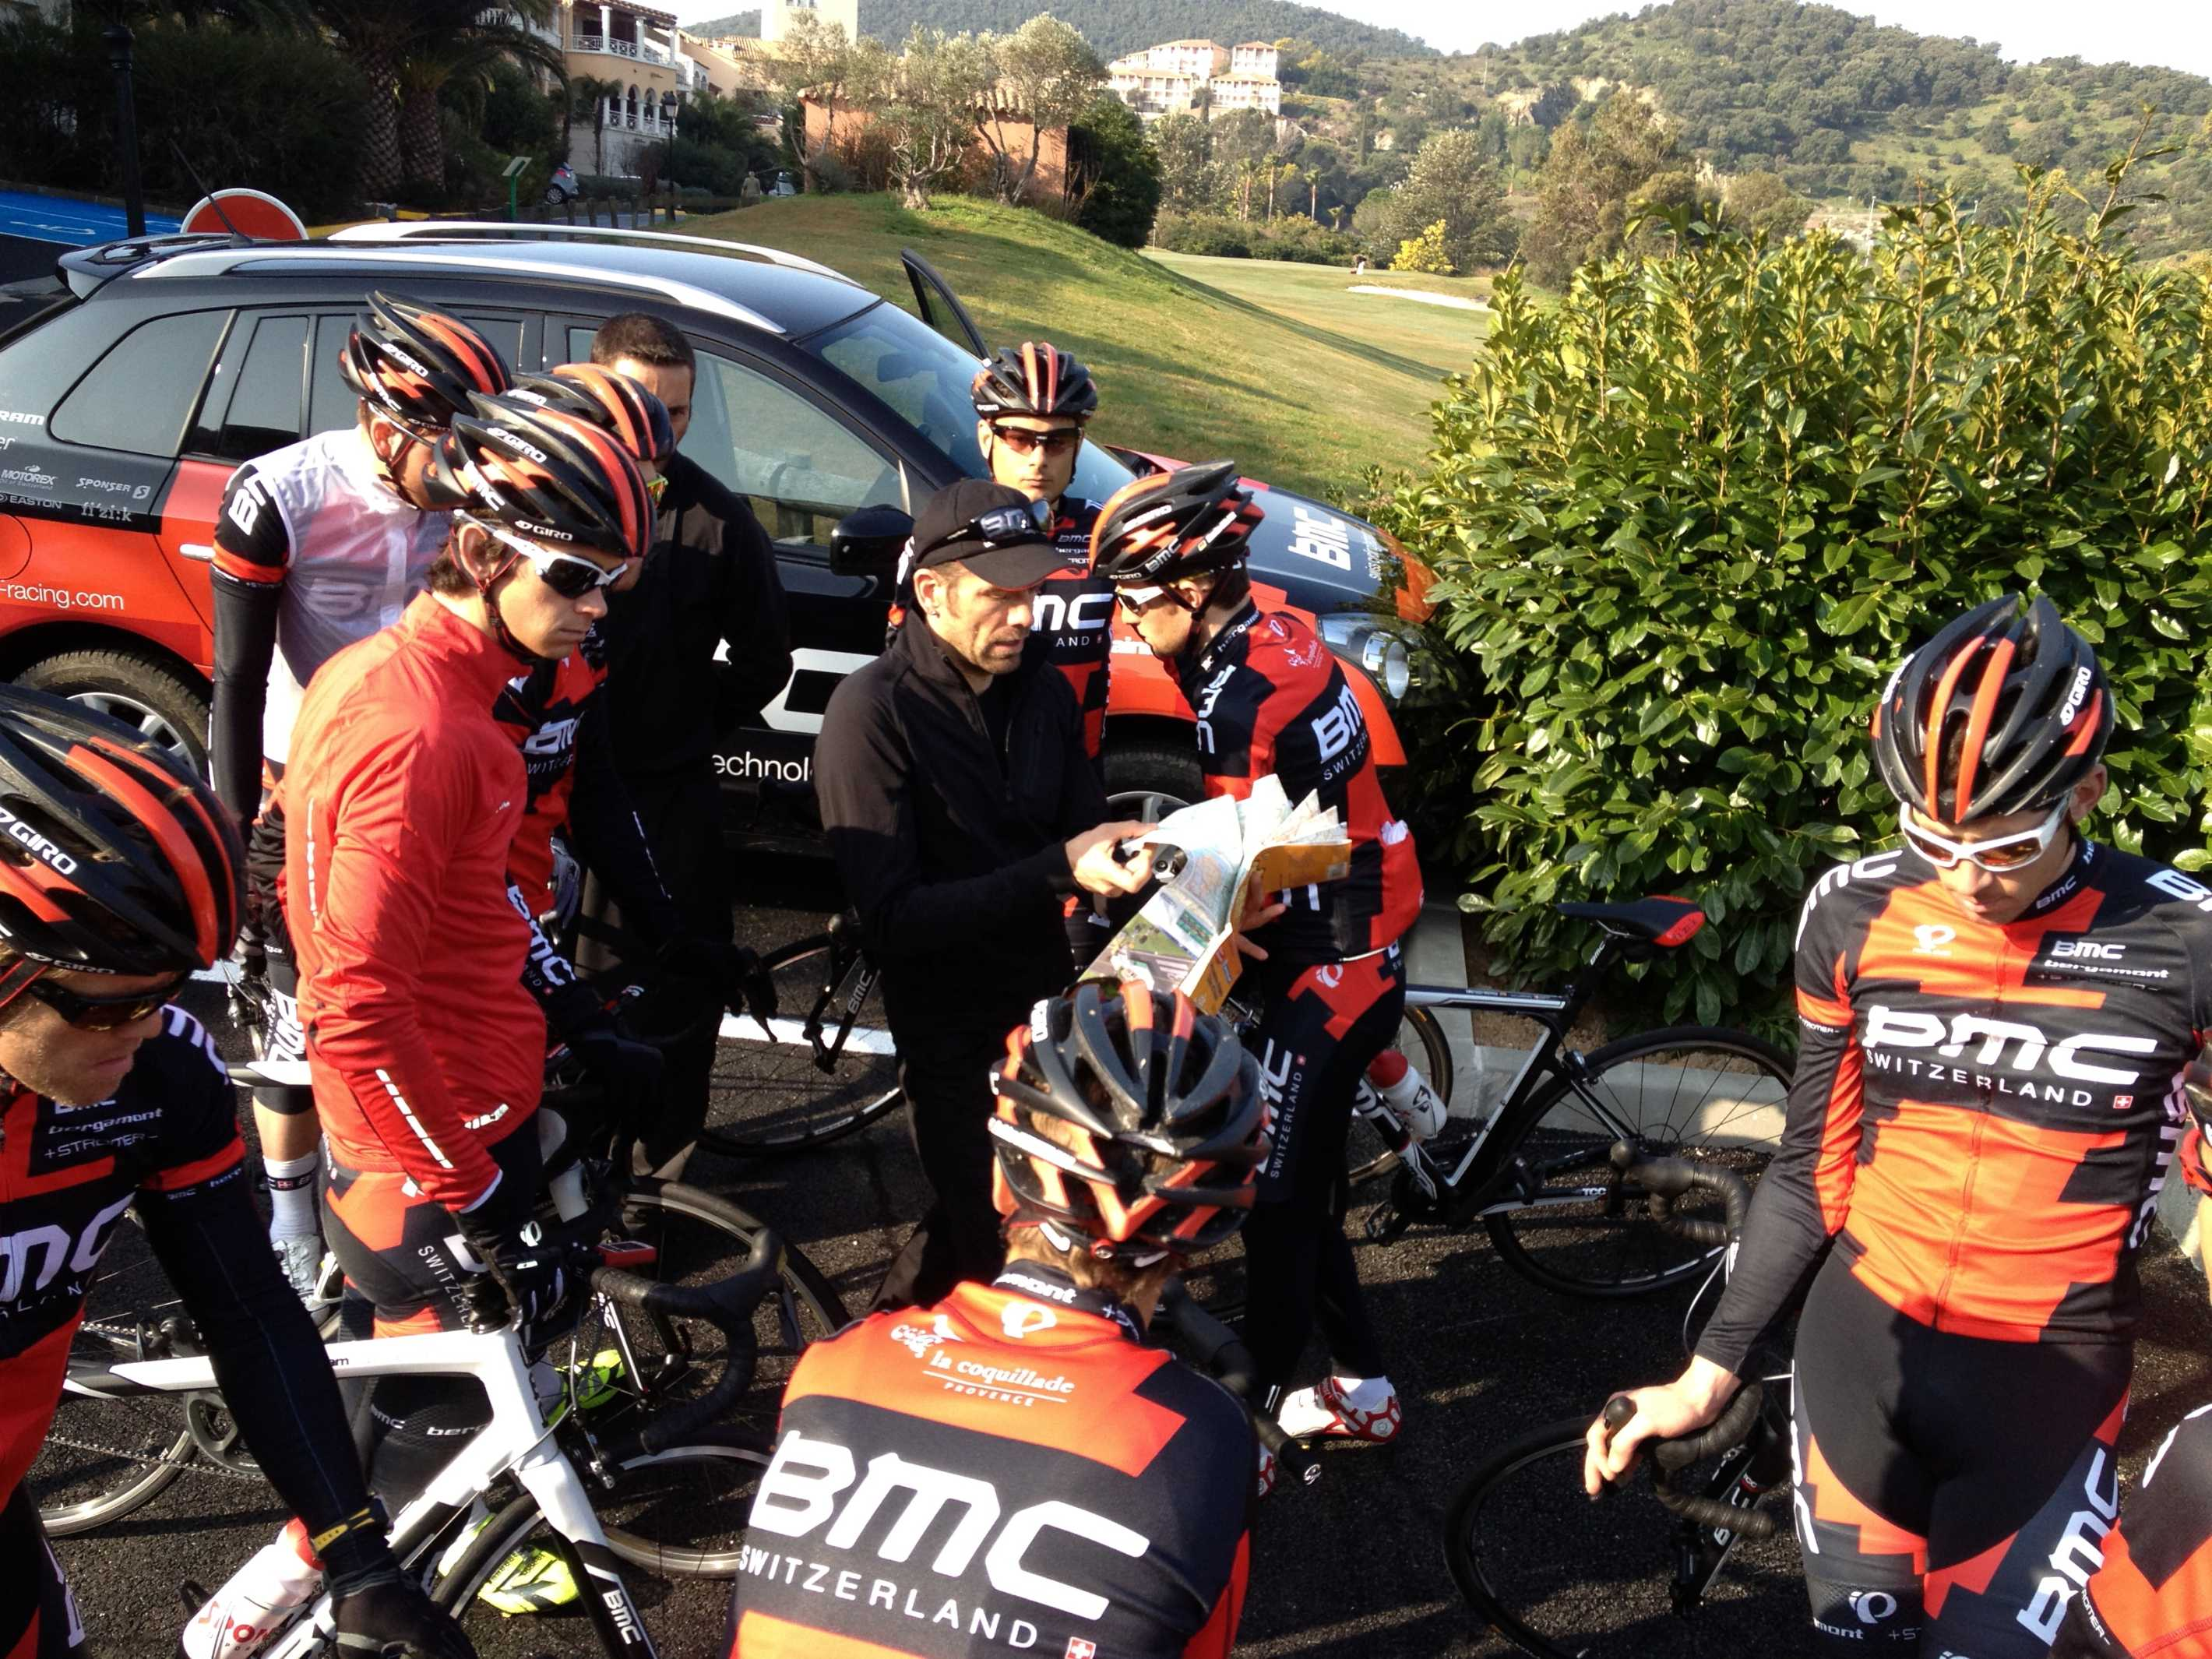 BMC Trainingslager